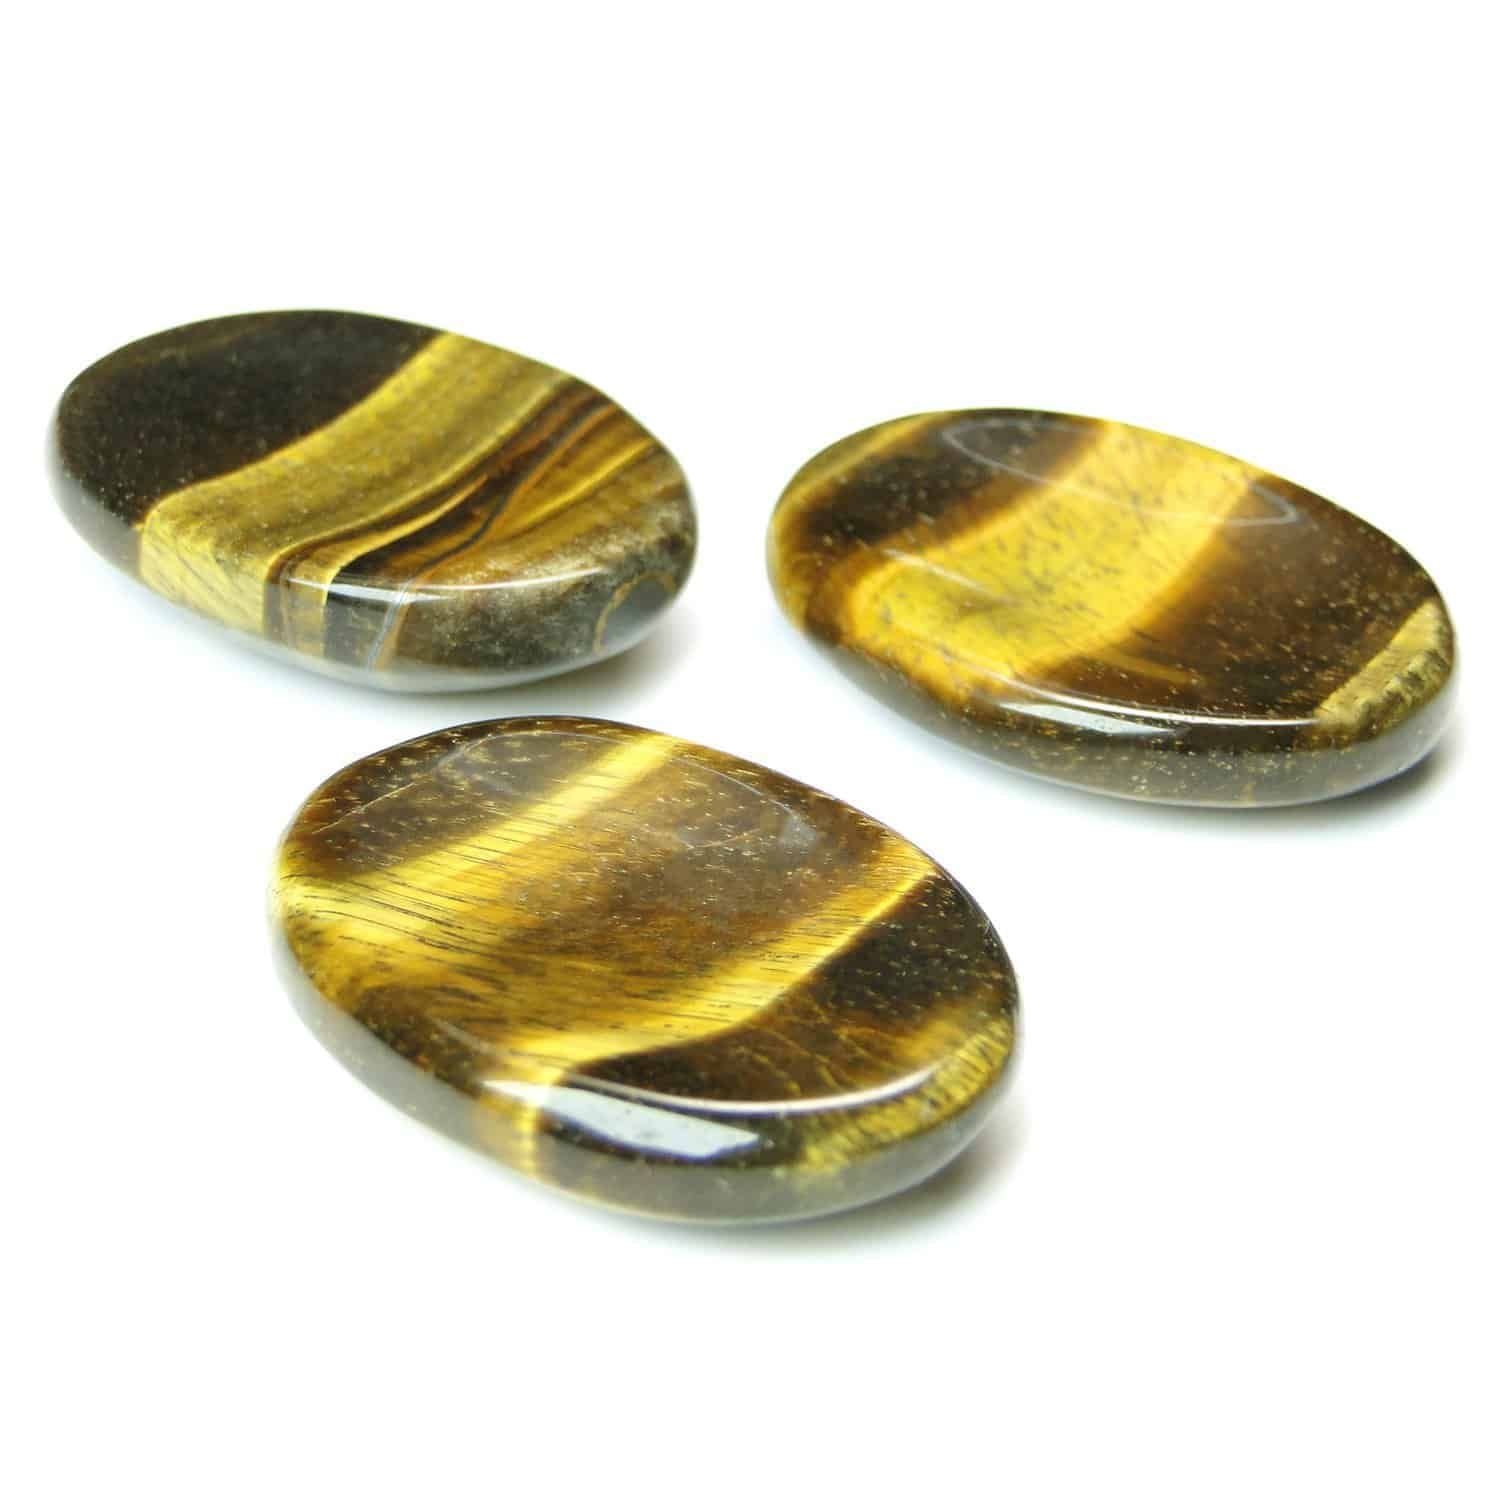 Tiger Eye Yellow Worry Stone Palm Stone Thumb Stone Nature's Crest WS0010 ₹269.00